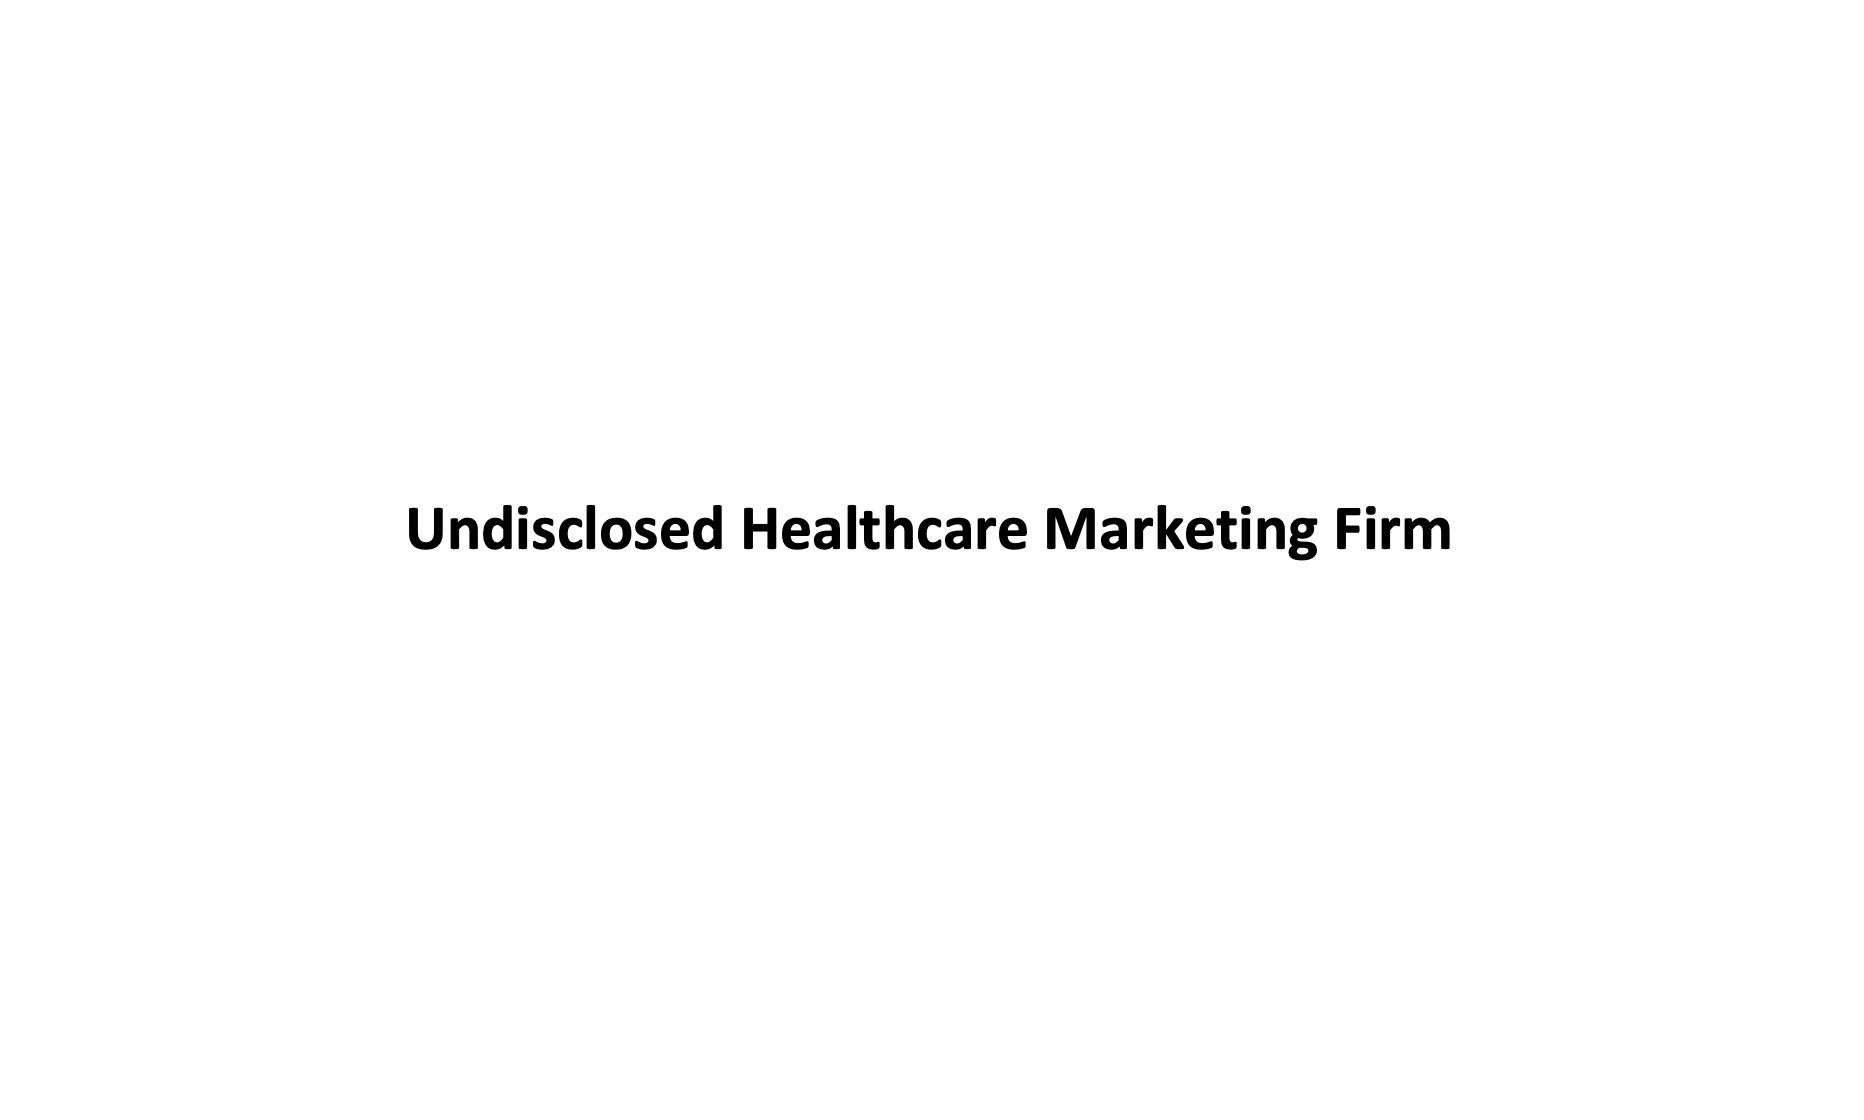 Undisclosed Healthcare Marketing Firm